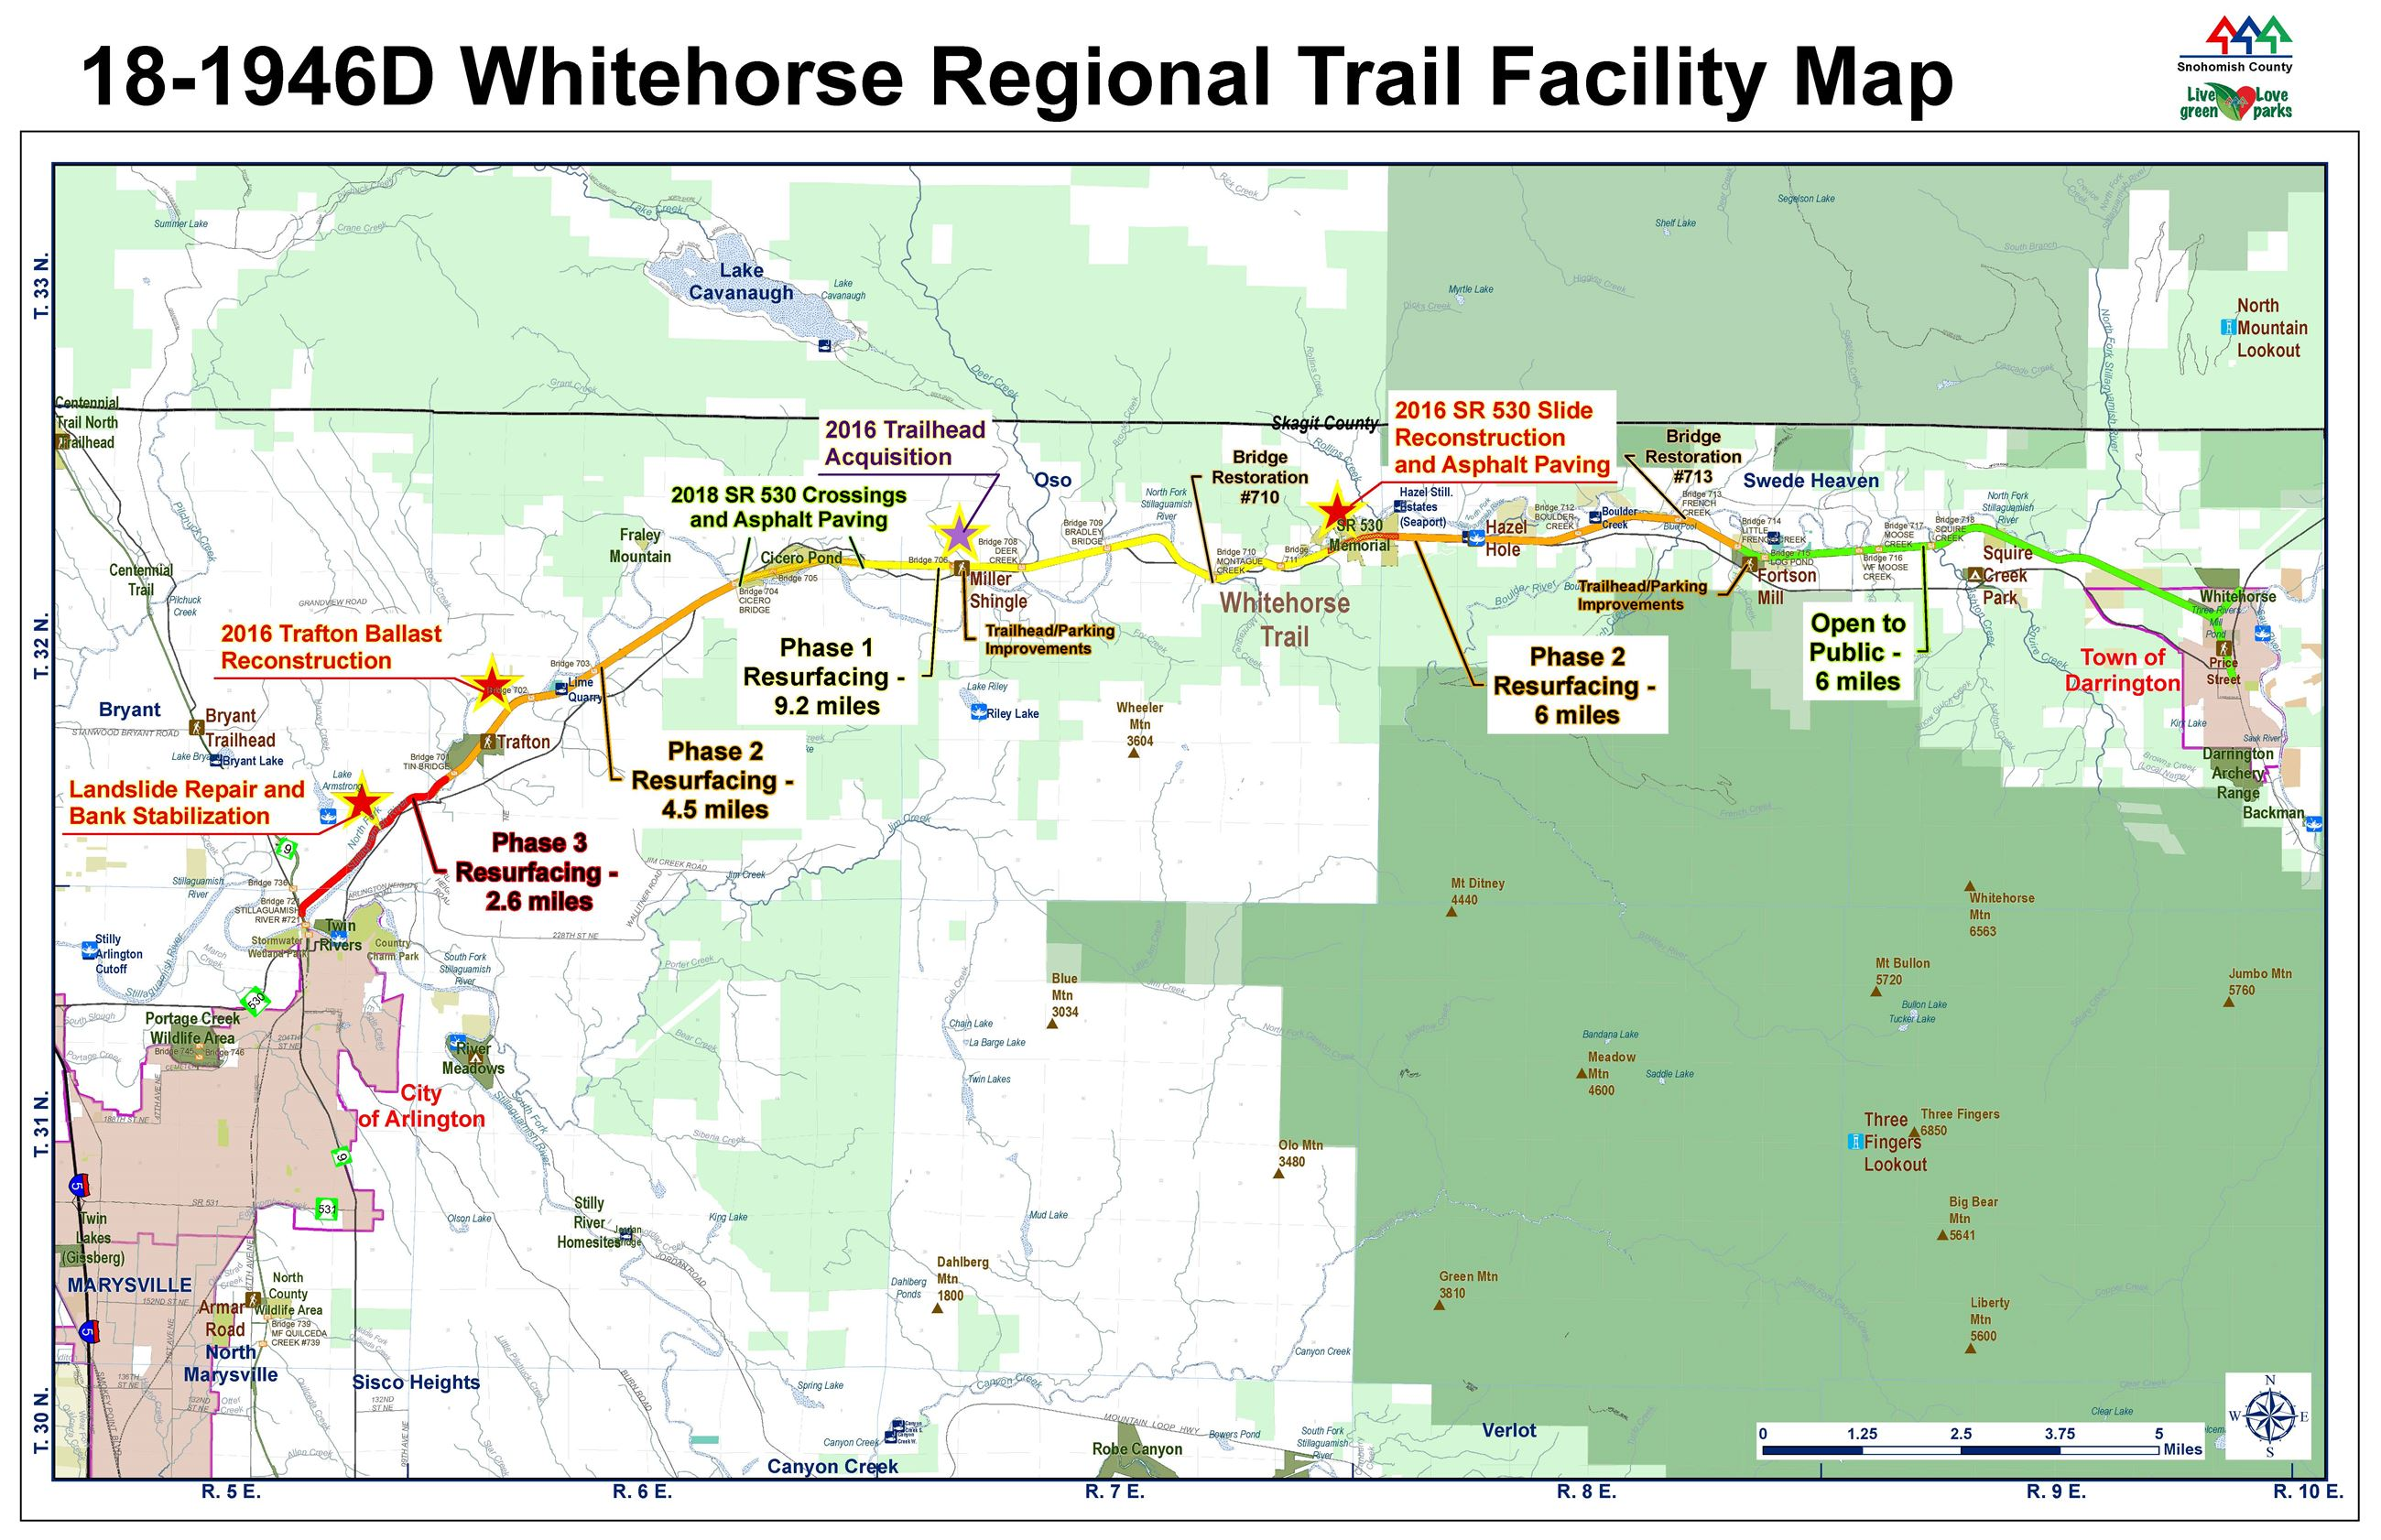 18-1946D_Whitehorse_Trail_Facility_Map